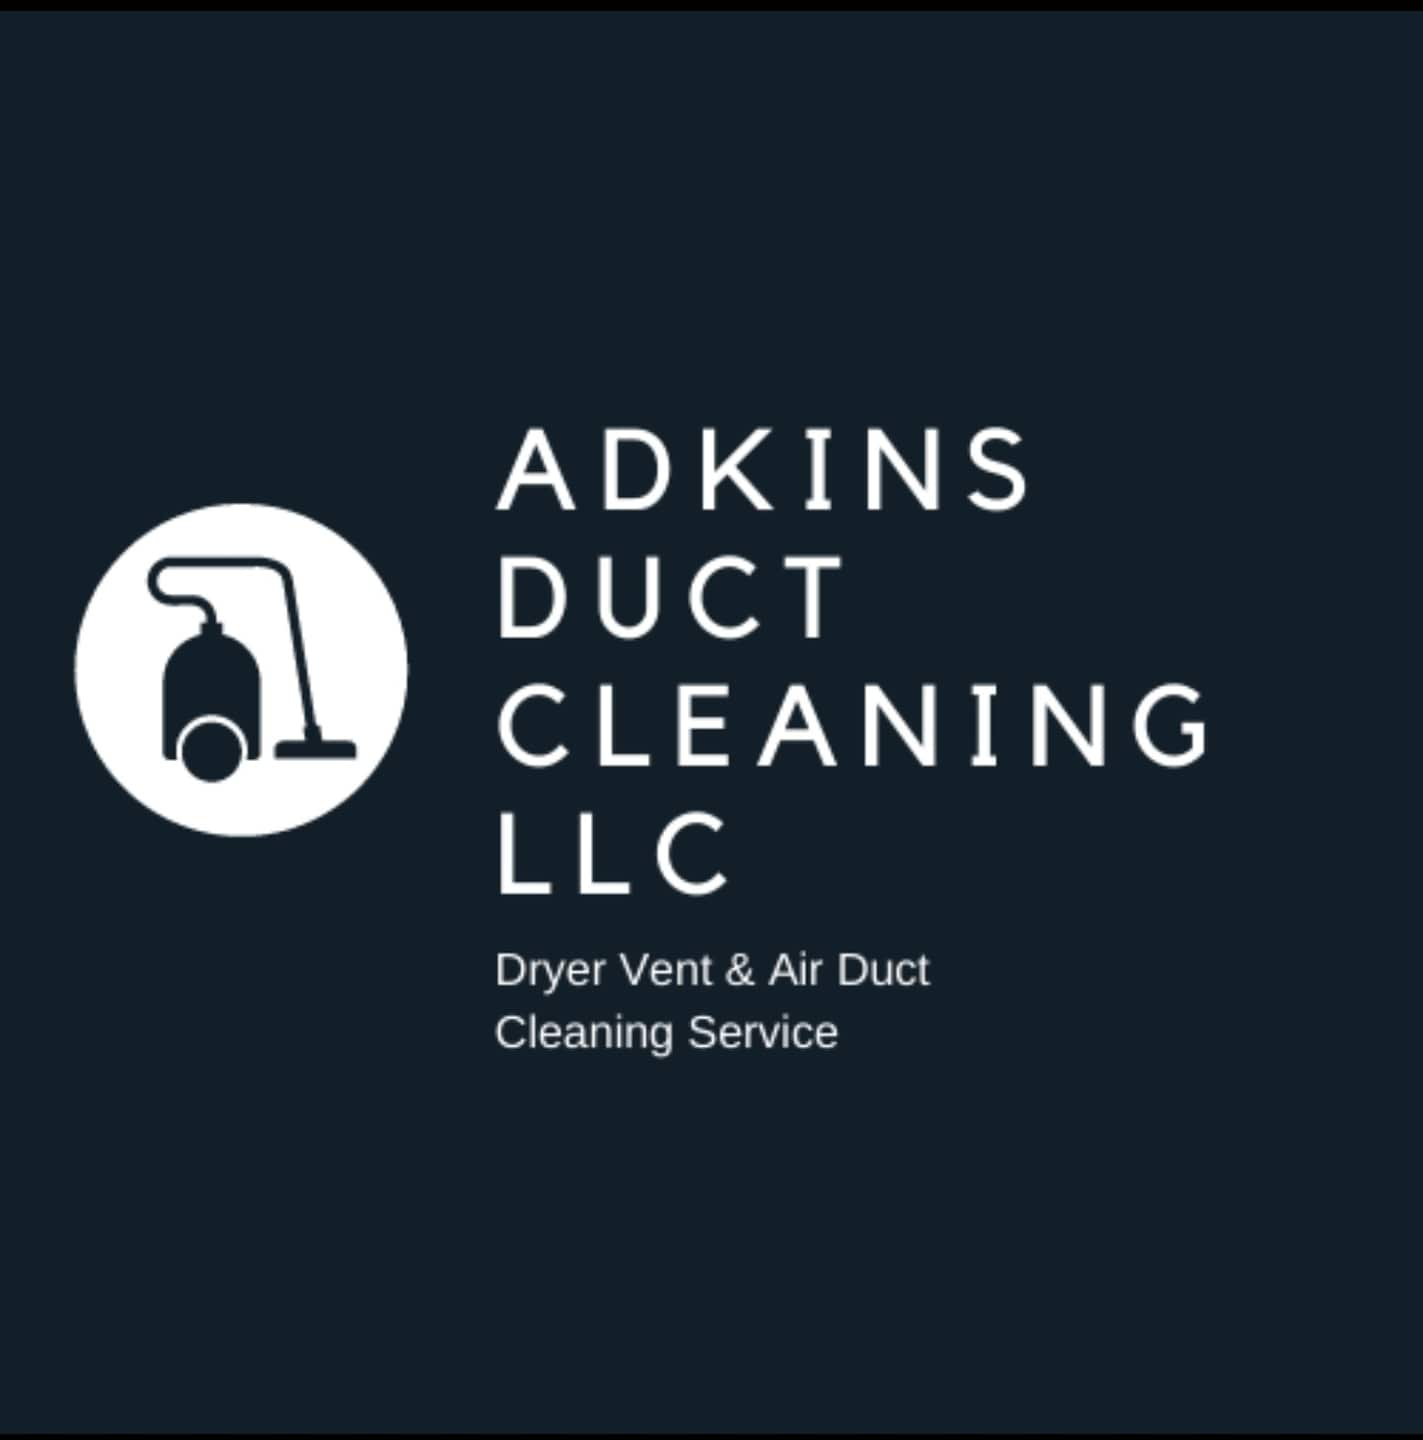 Adkins Duct Cleaning LLC